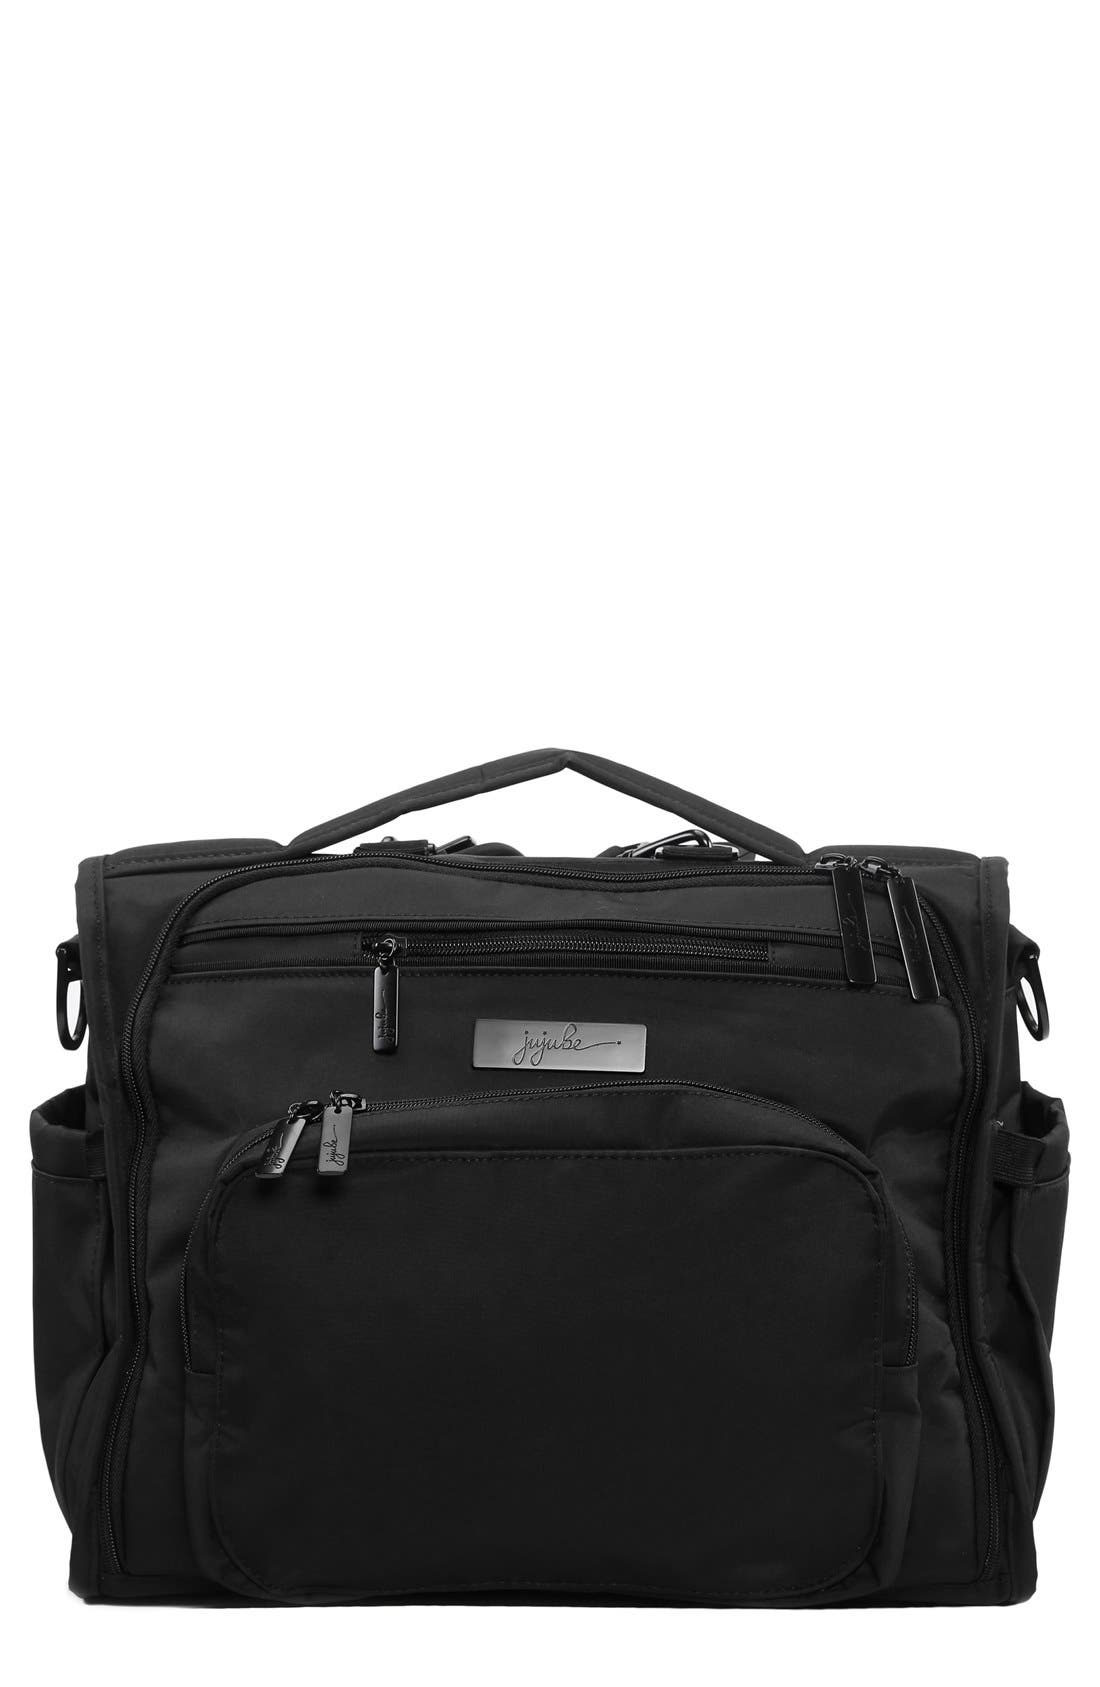 'BFF - Onyx Collection' Diaper Bag,                             Main thumbnail 1, color,                             BLACK OUT